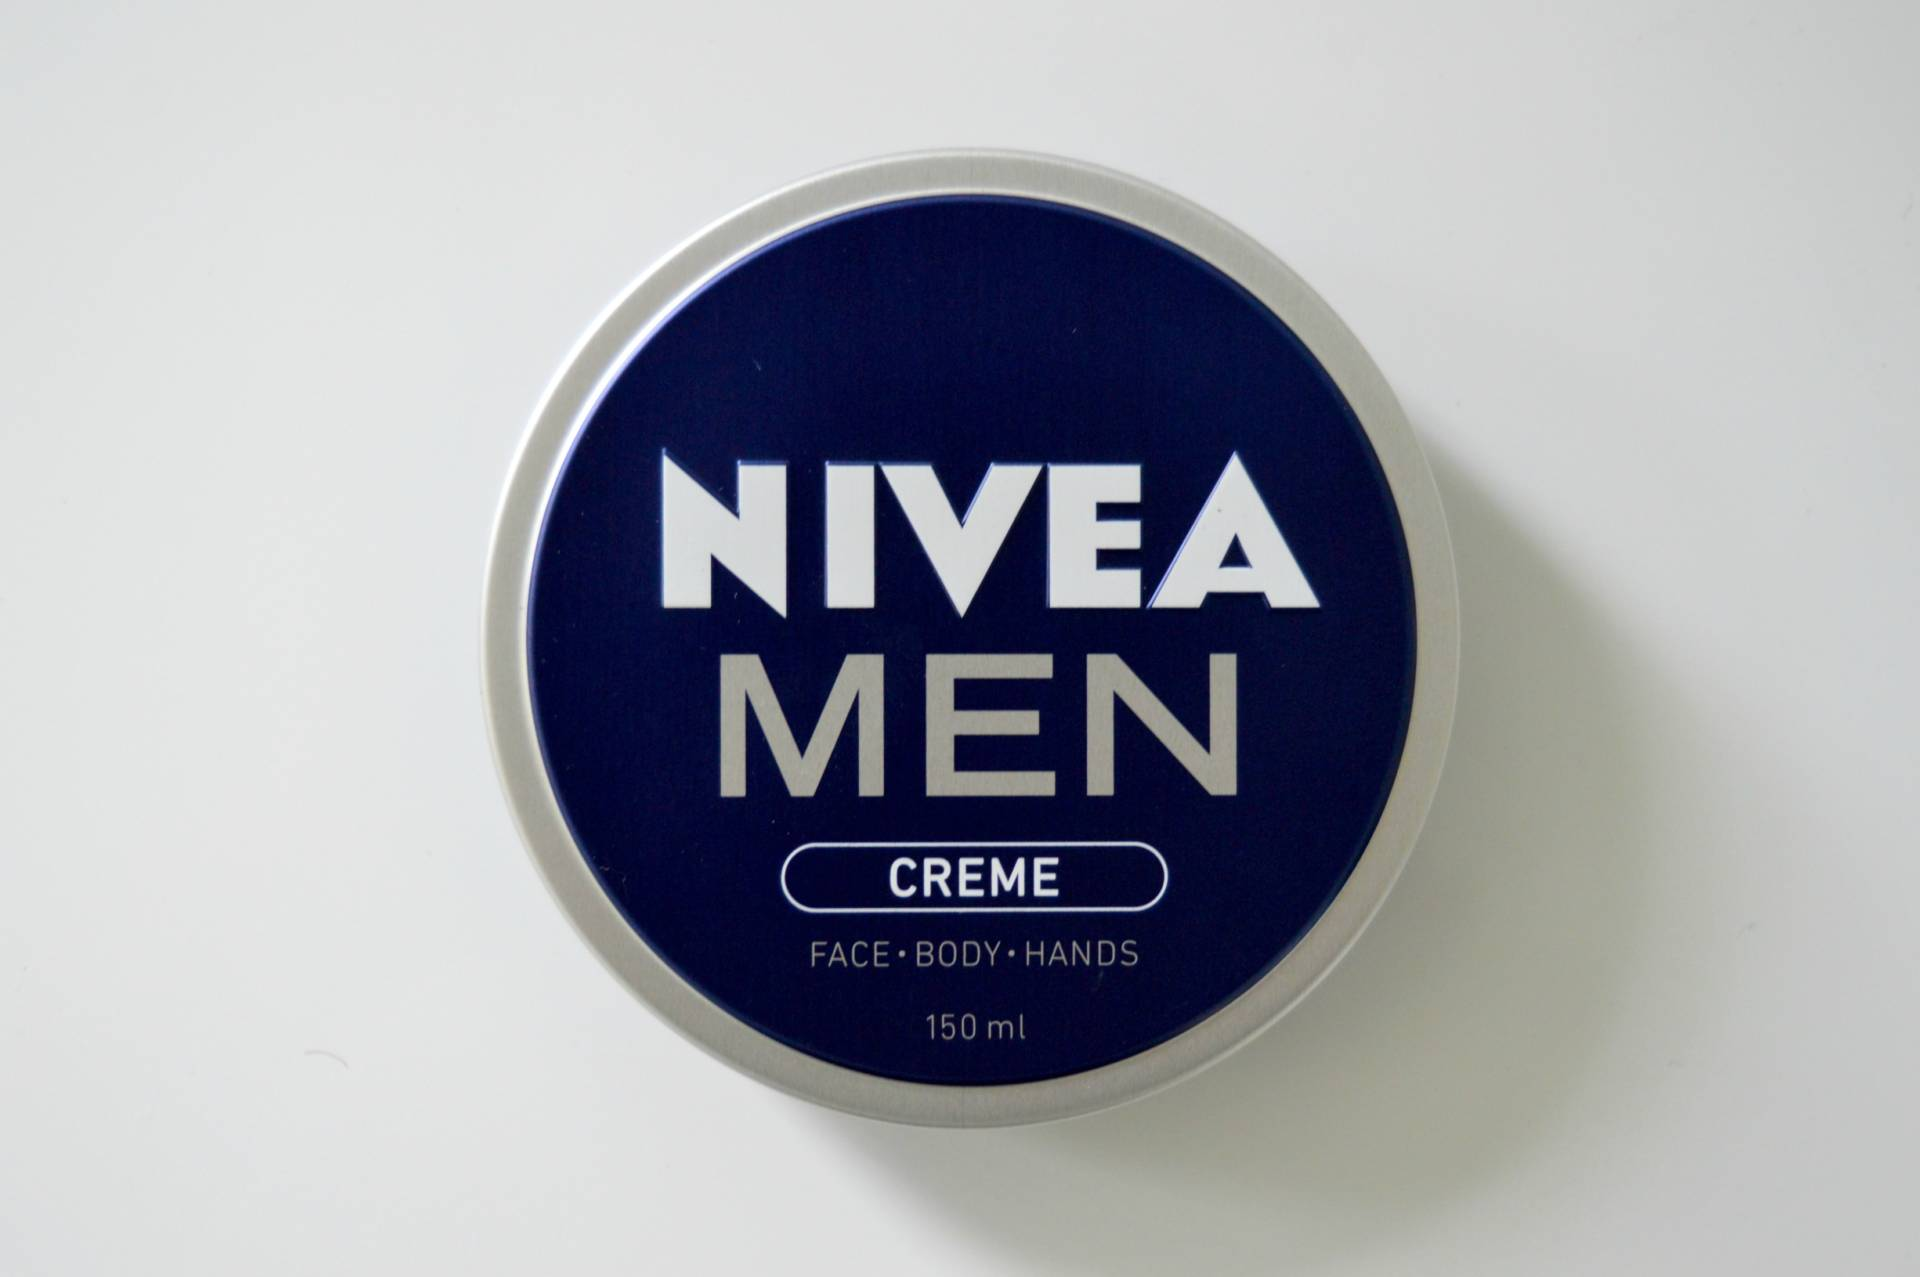 nivea men creme made in germany inhautepursuit review